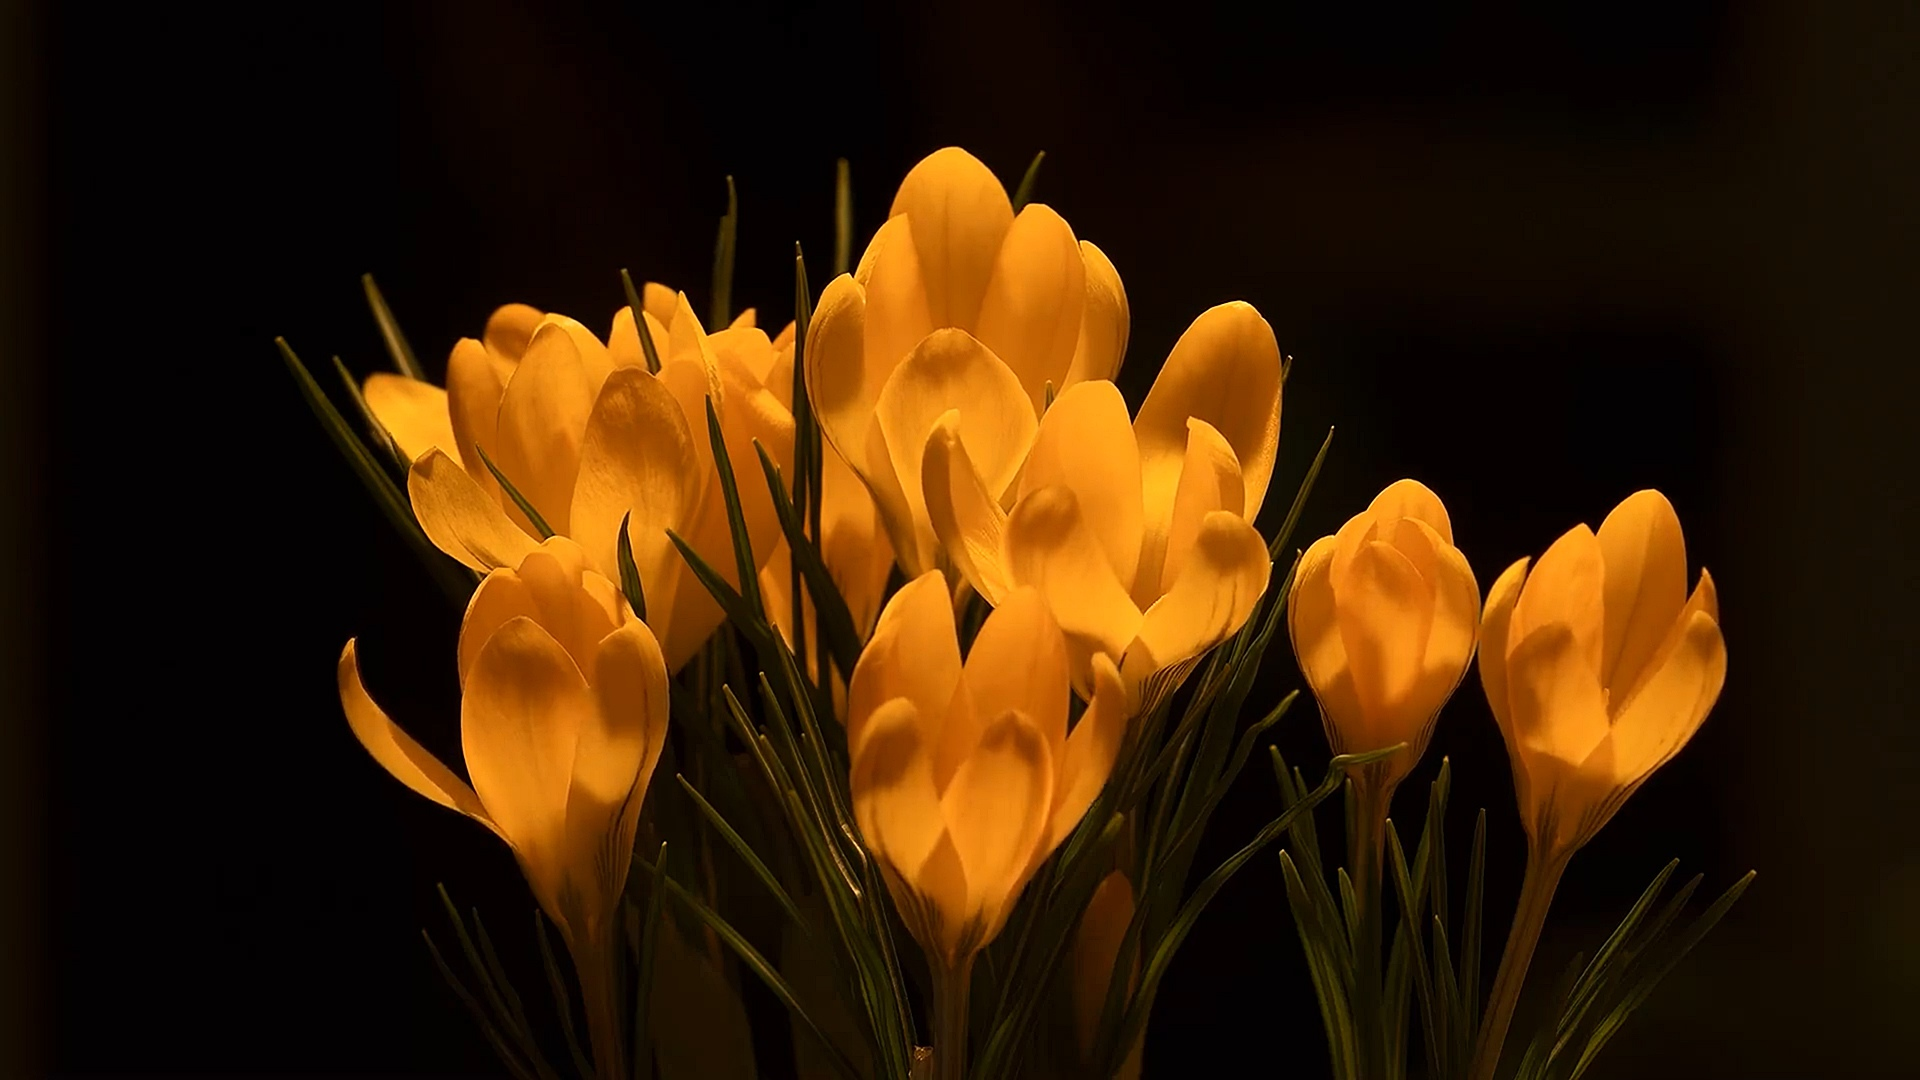 GOLDEN CROCUS ( RainWallpaper )